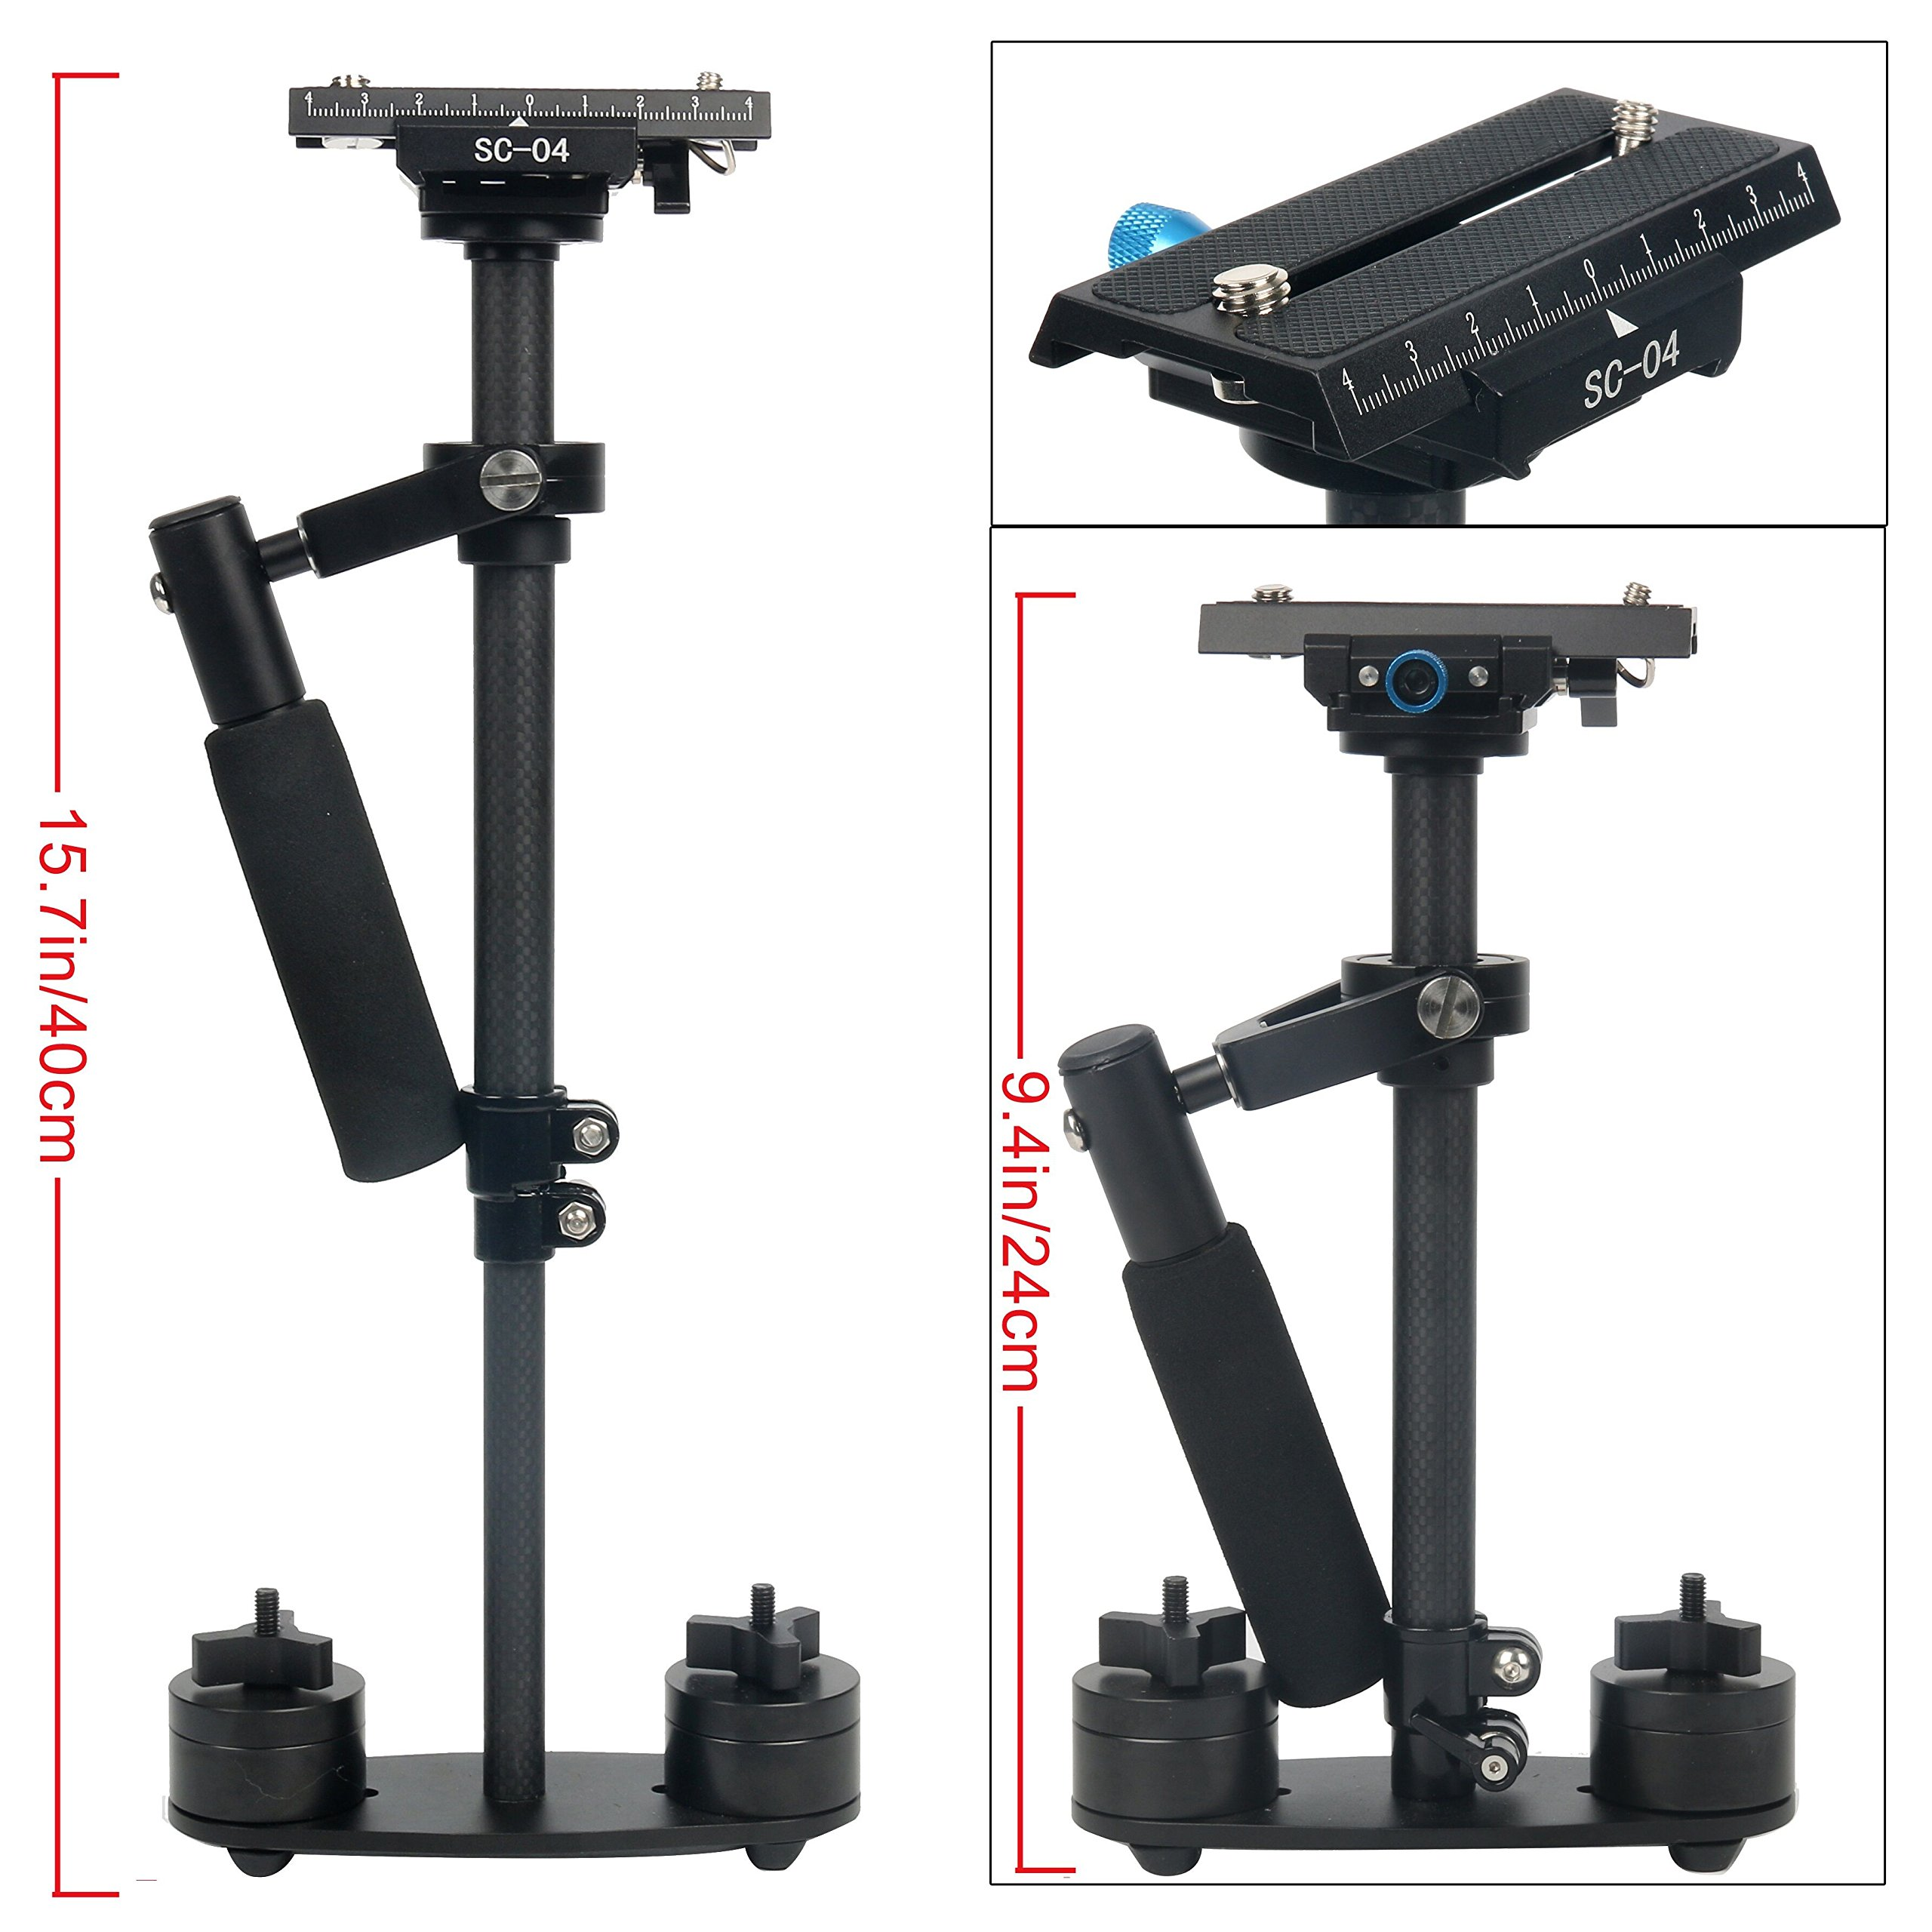 """YaeCCC 15.7''/40CM Carbon Fiber Handheld Camera Stabilizer-S40T Video Steadycam with Quick Release Plate 1/4"""" and 3/8"""" Screw for Canon Nikon Sony Panasonic Olympus DSLR Camera GoPro DV"""